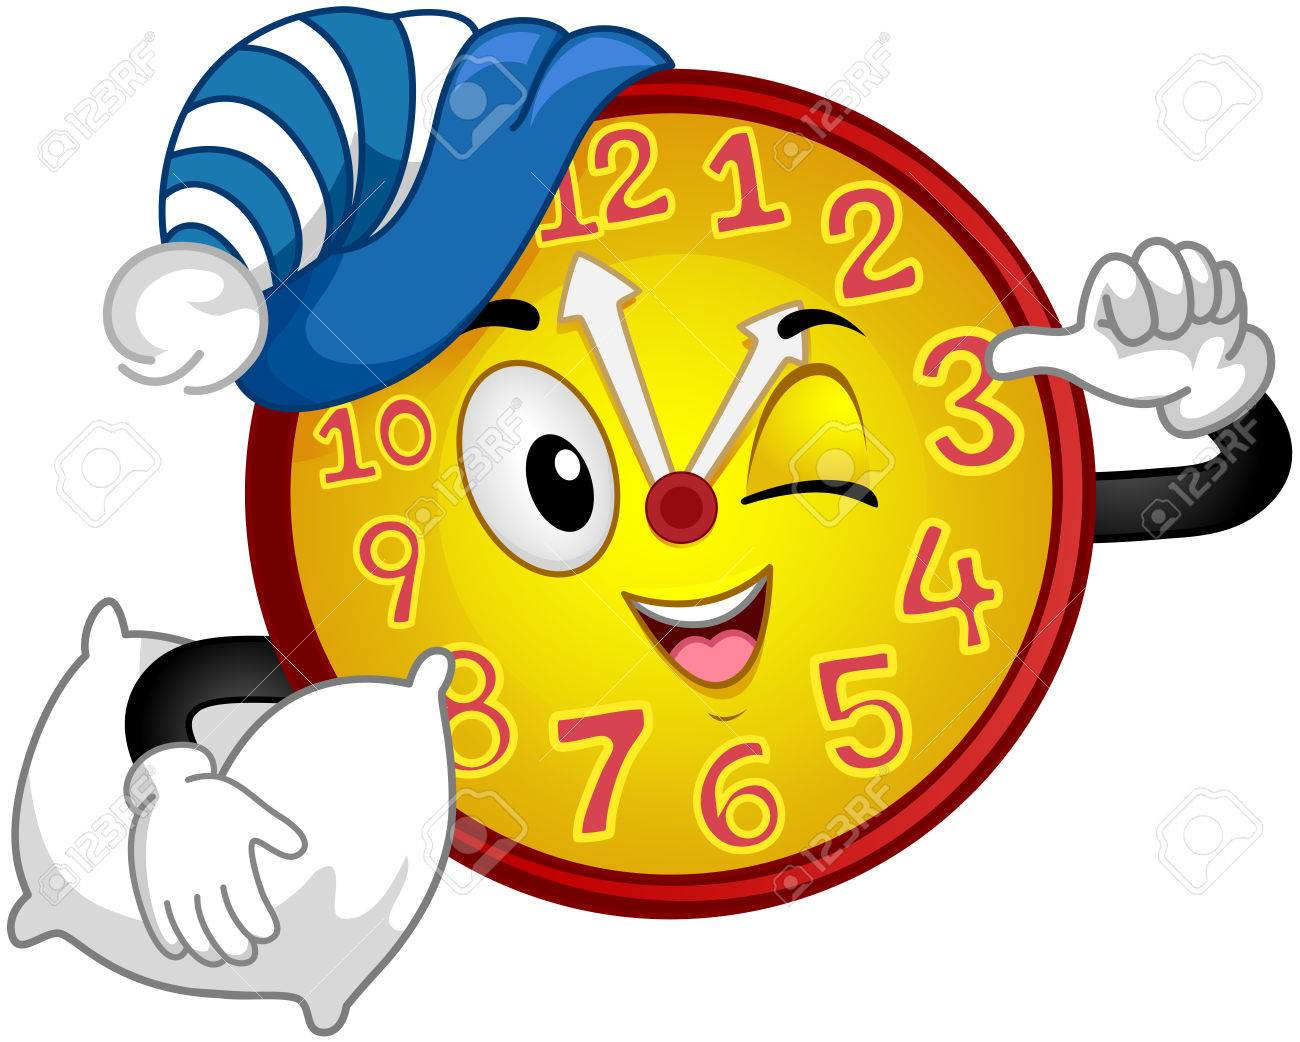 Colorful Mascot Illustration Featuring A Wall Clock Wearing A ...